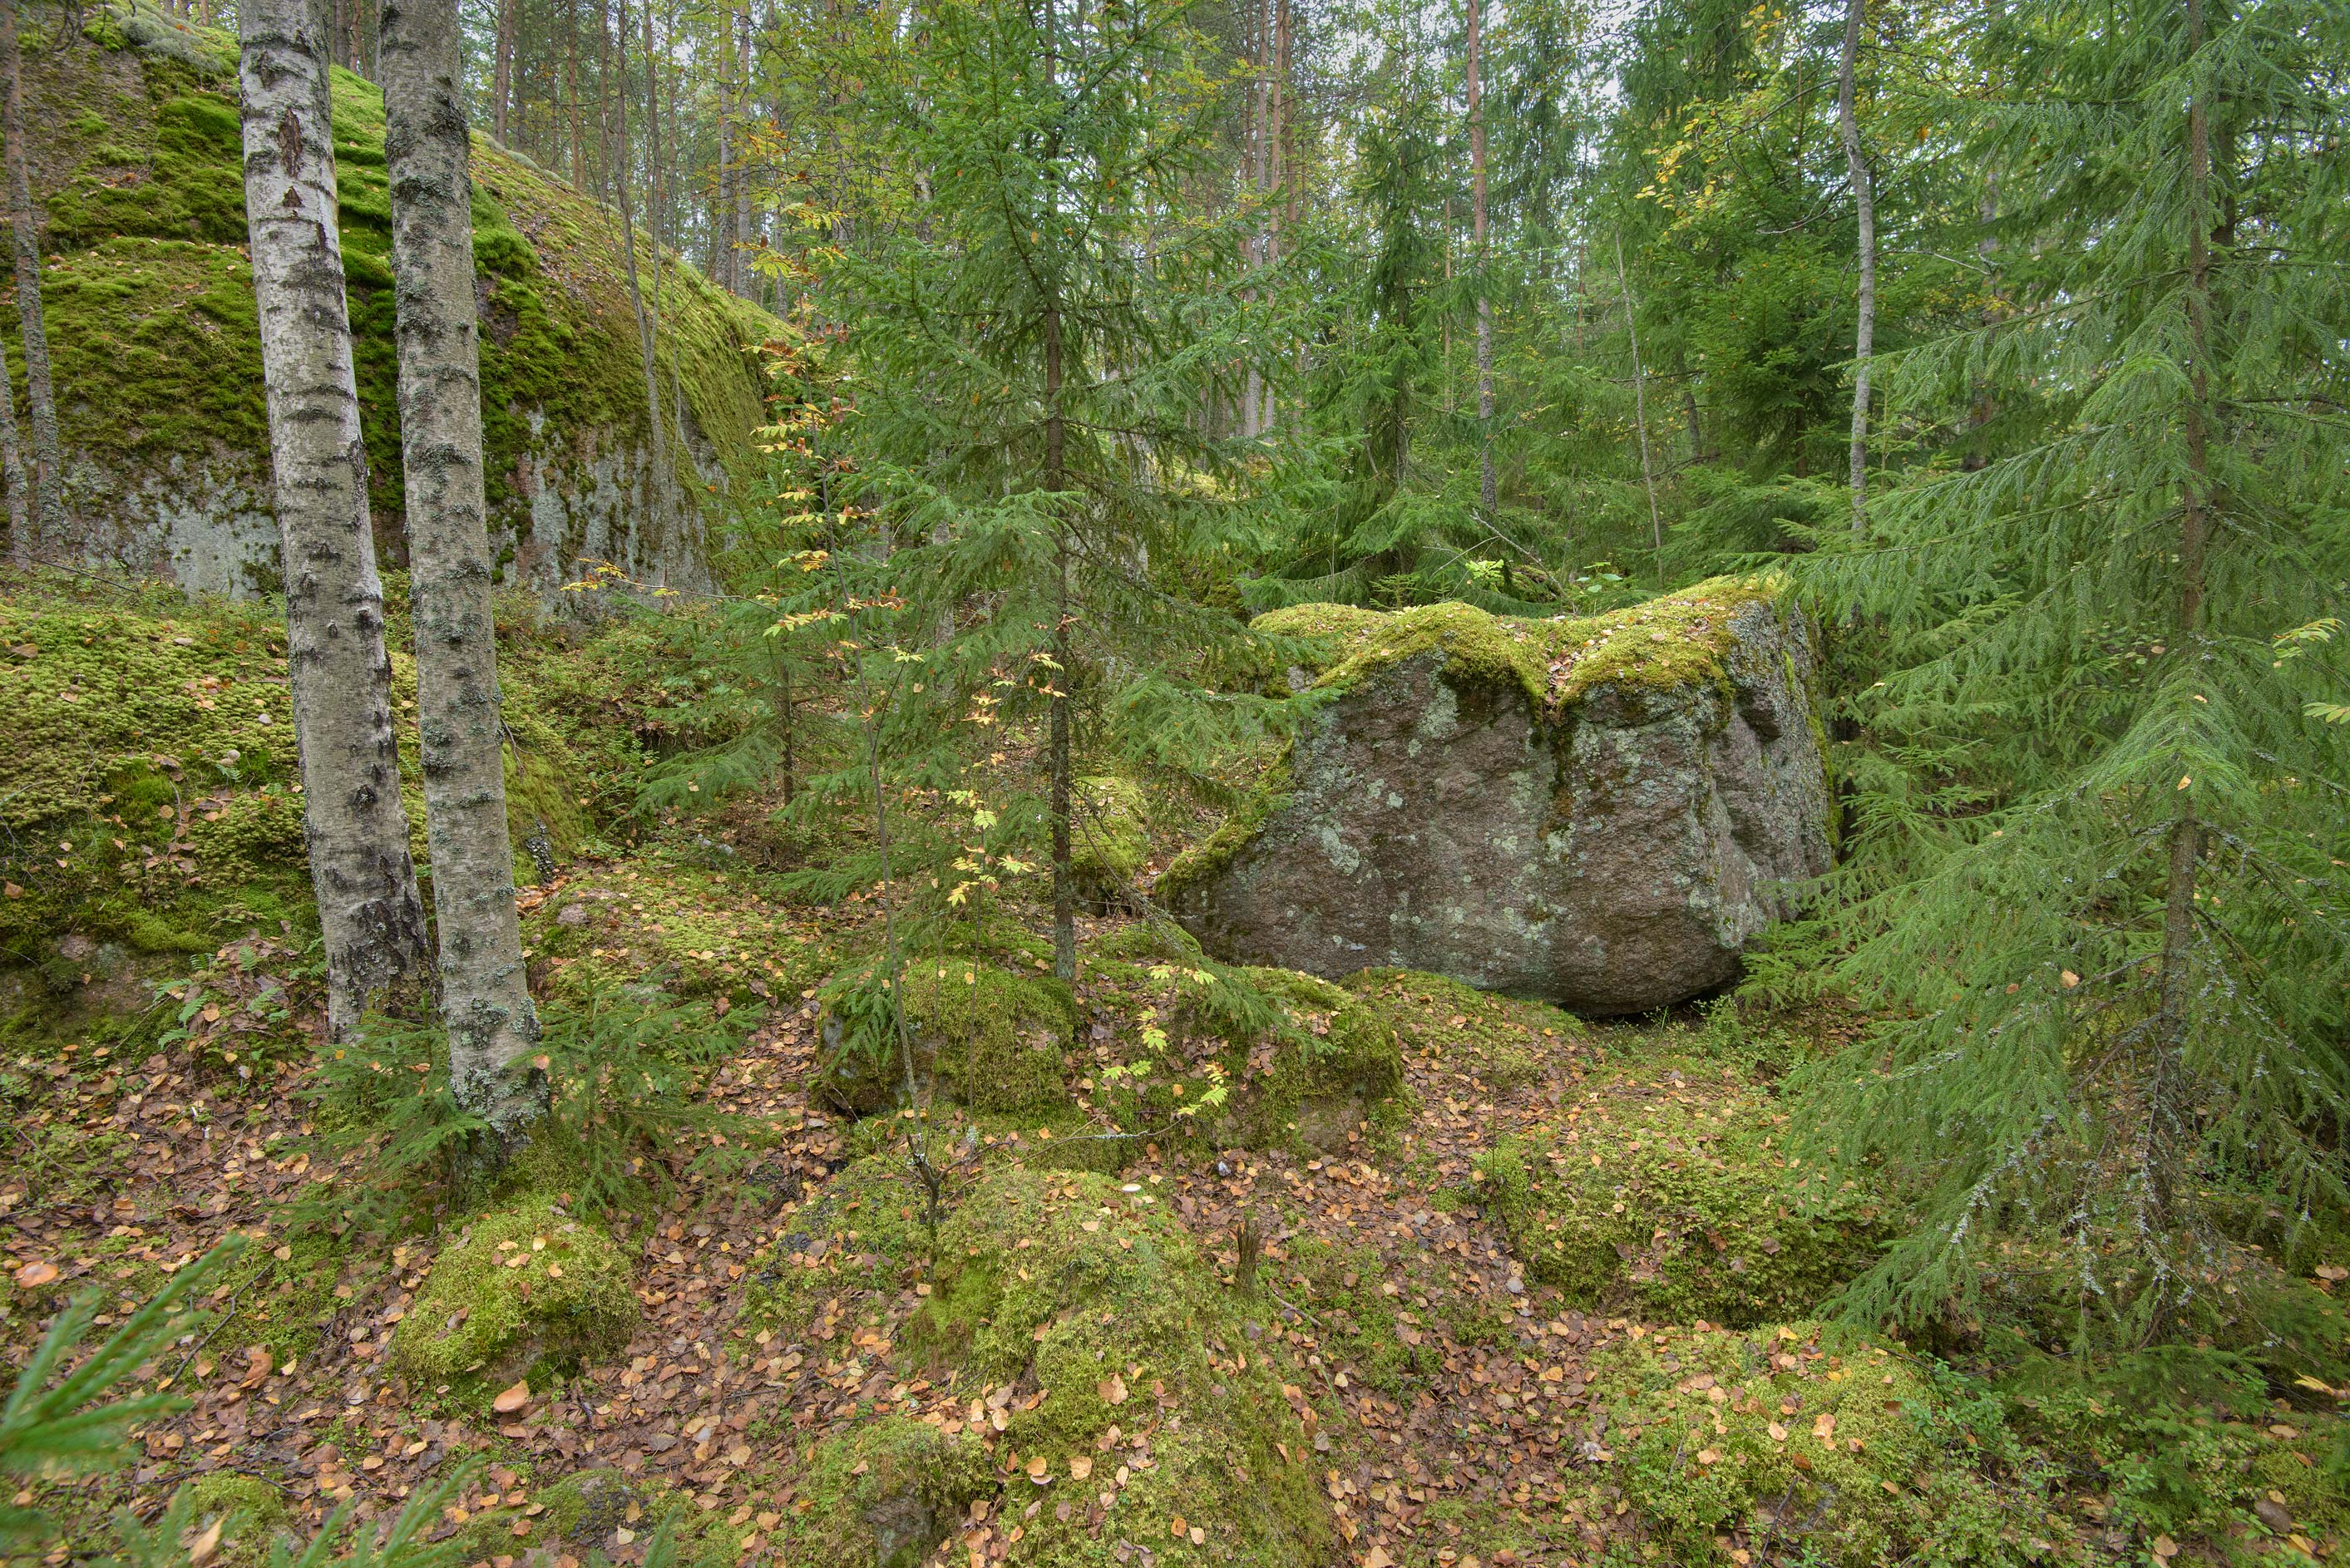 Mossy stones in a forest near Monrepo (Mon Repos) Park. Vyborg, Russia